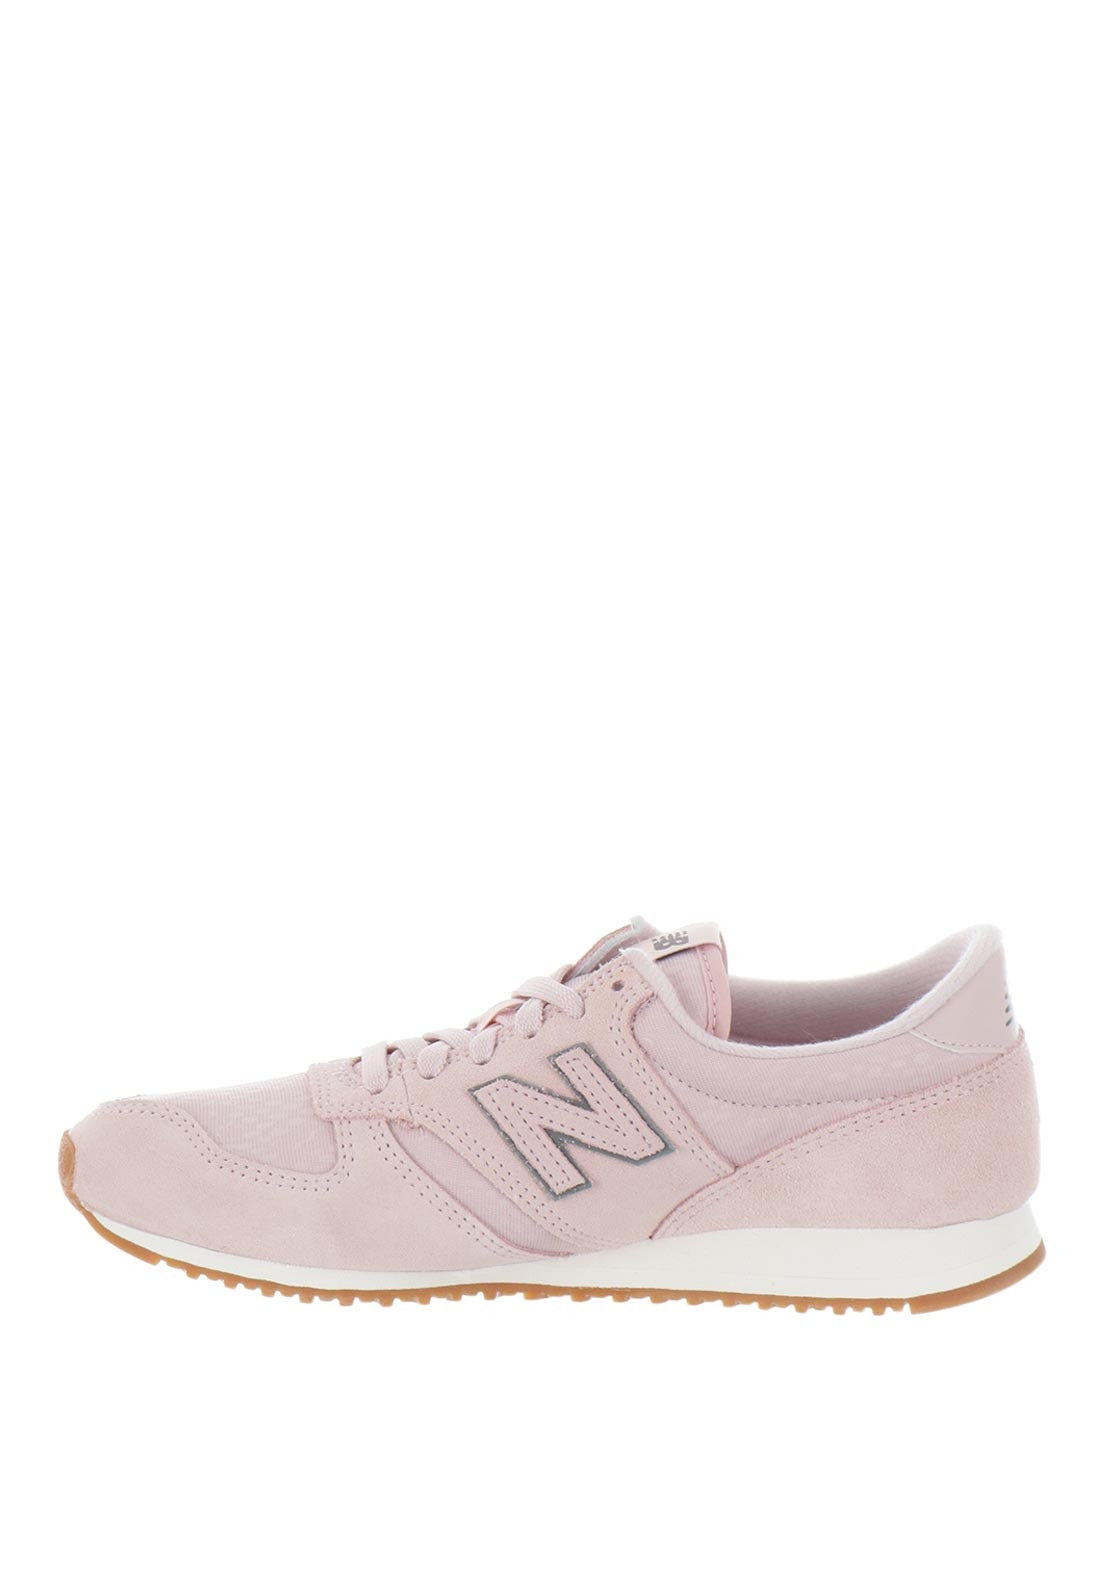 New Balance Womens 420 Suede Mix Trainers, Pink